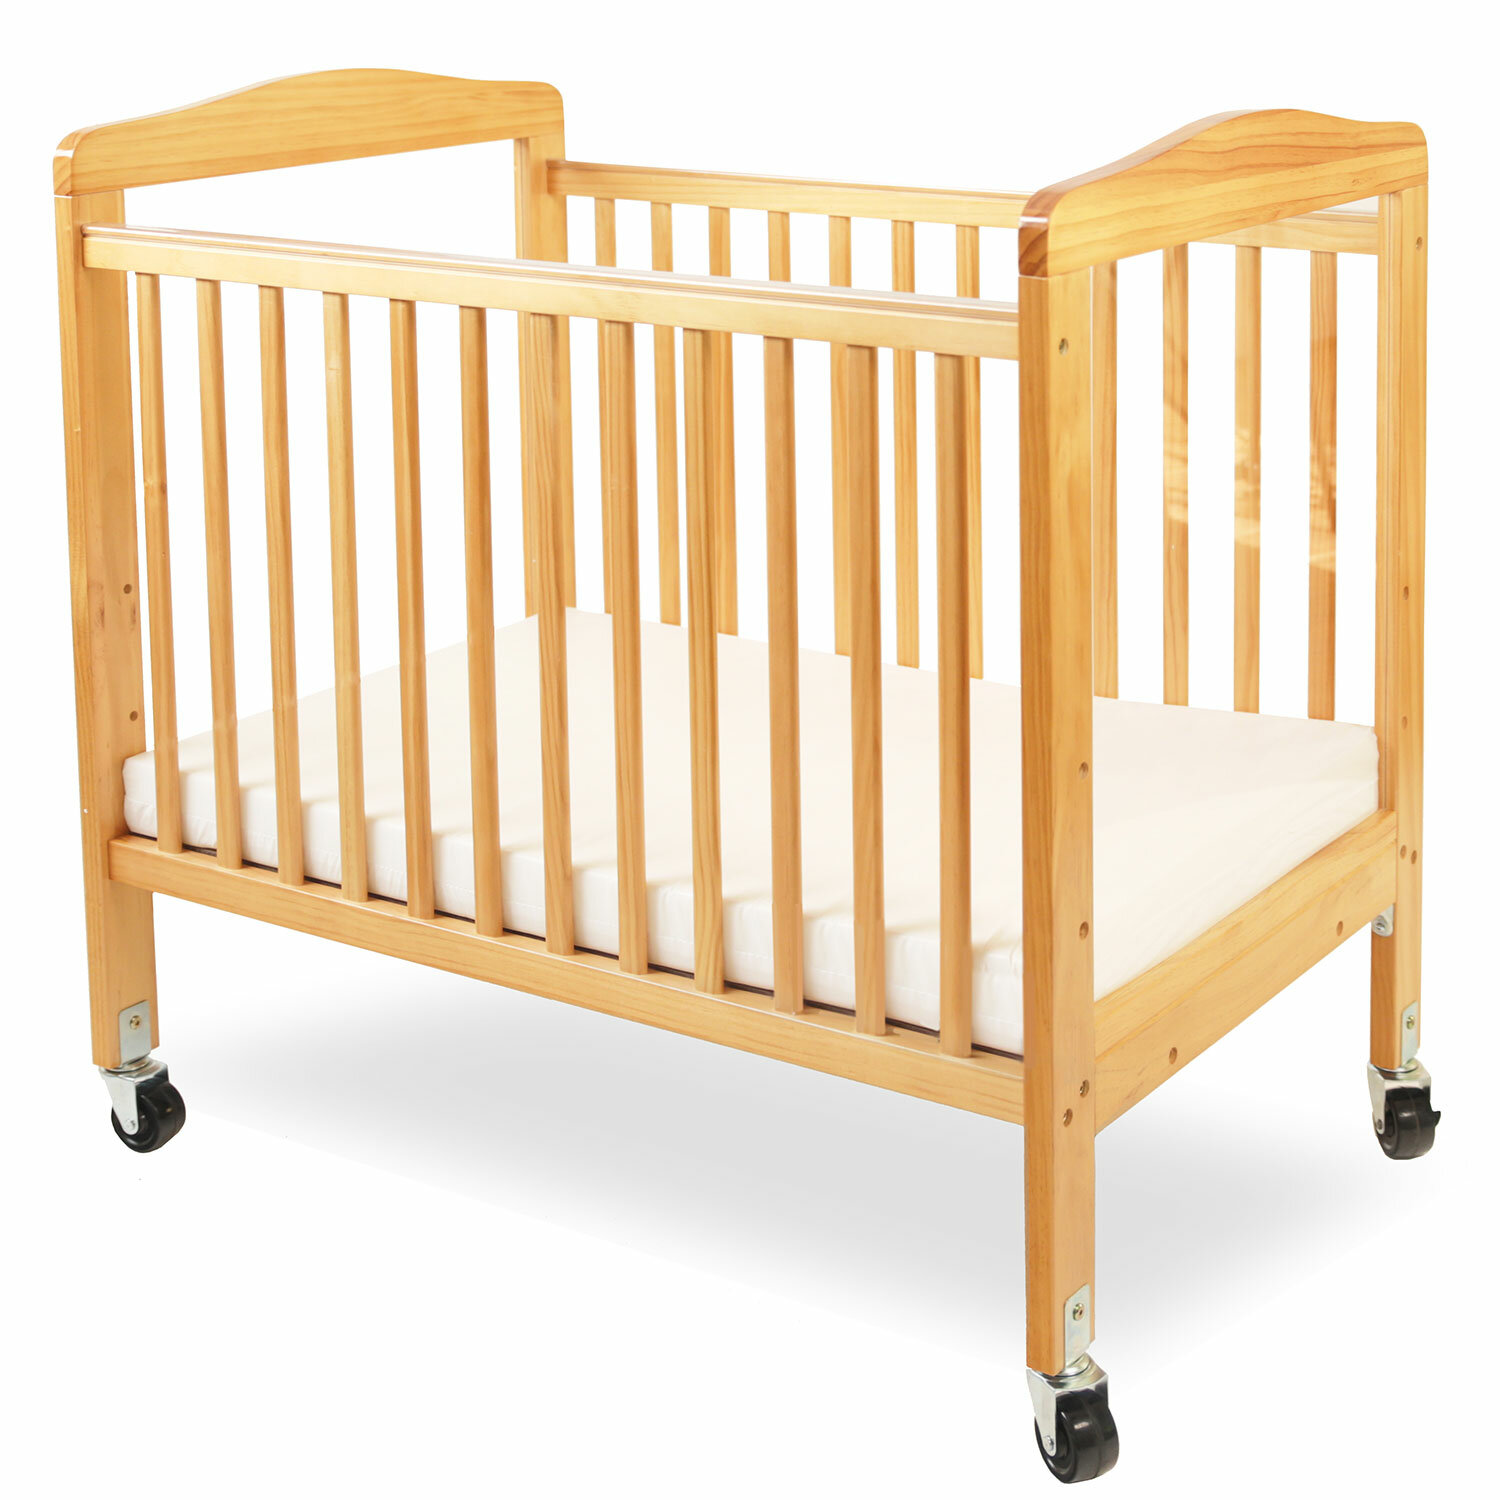 LA Baby Compact Wooden Window Portable Crib With Mattress Reviews